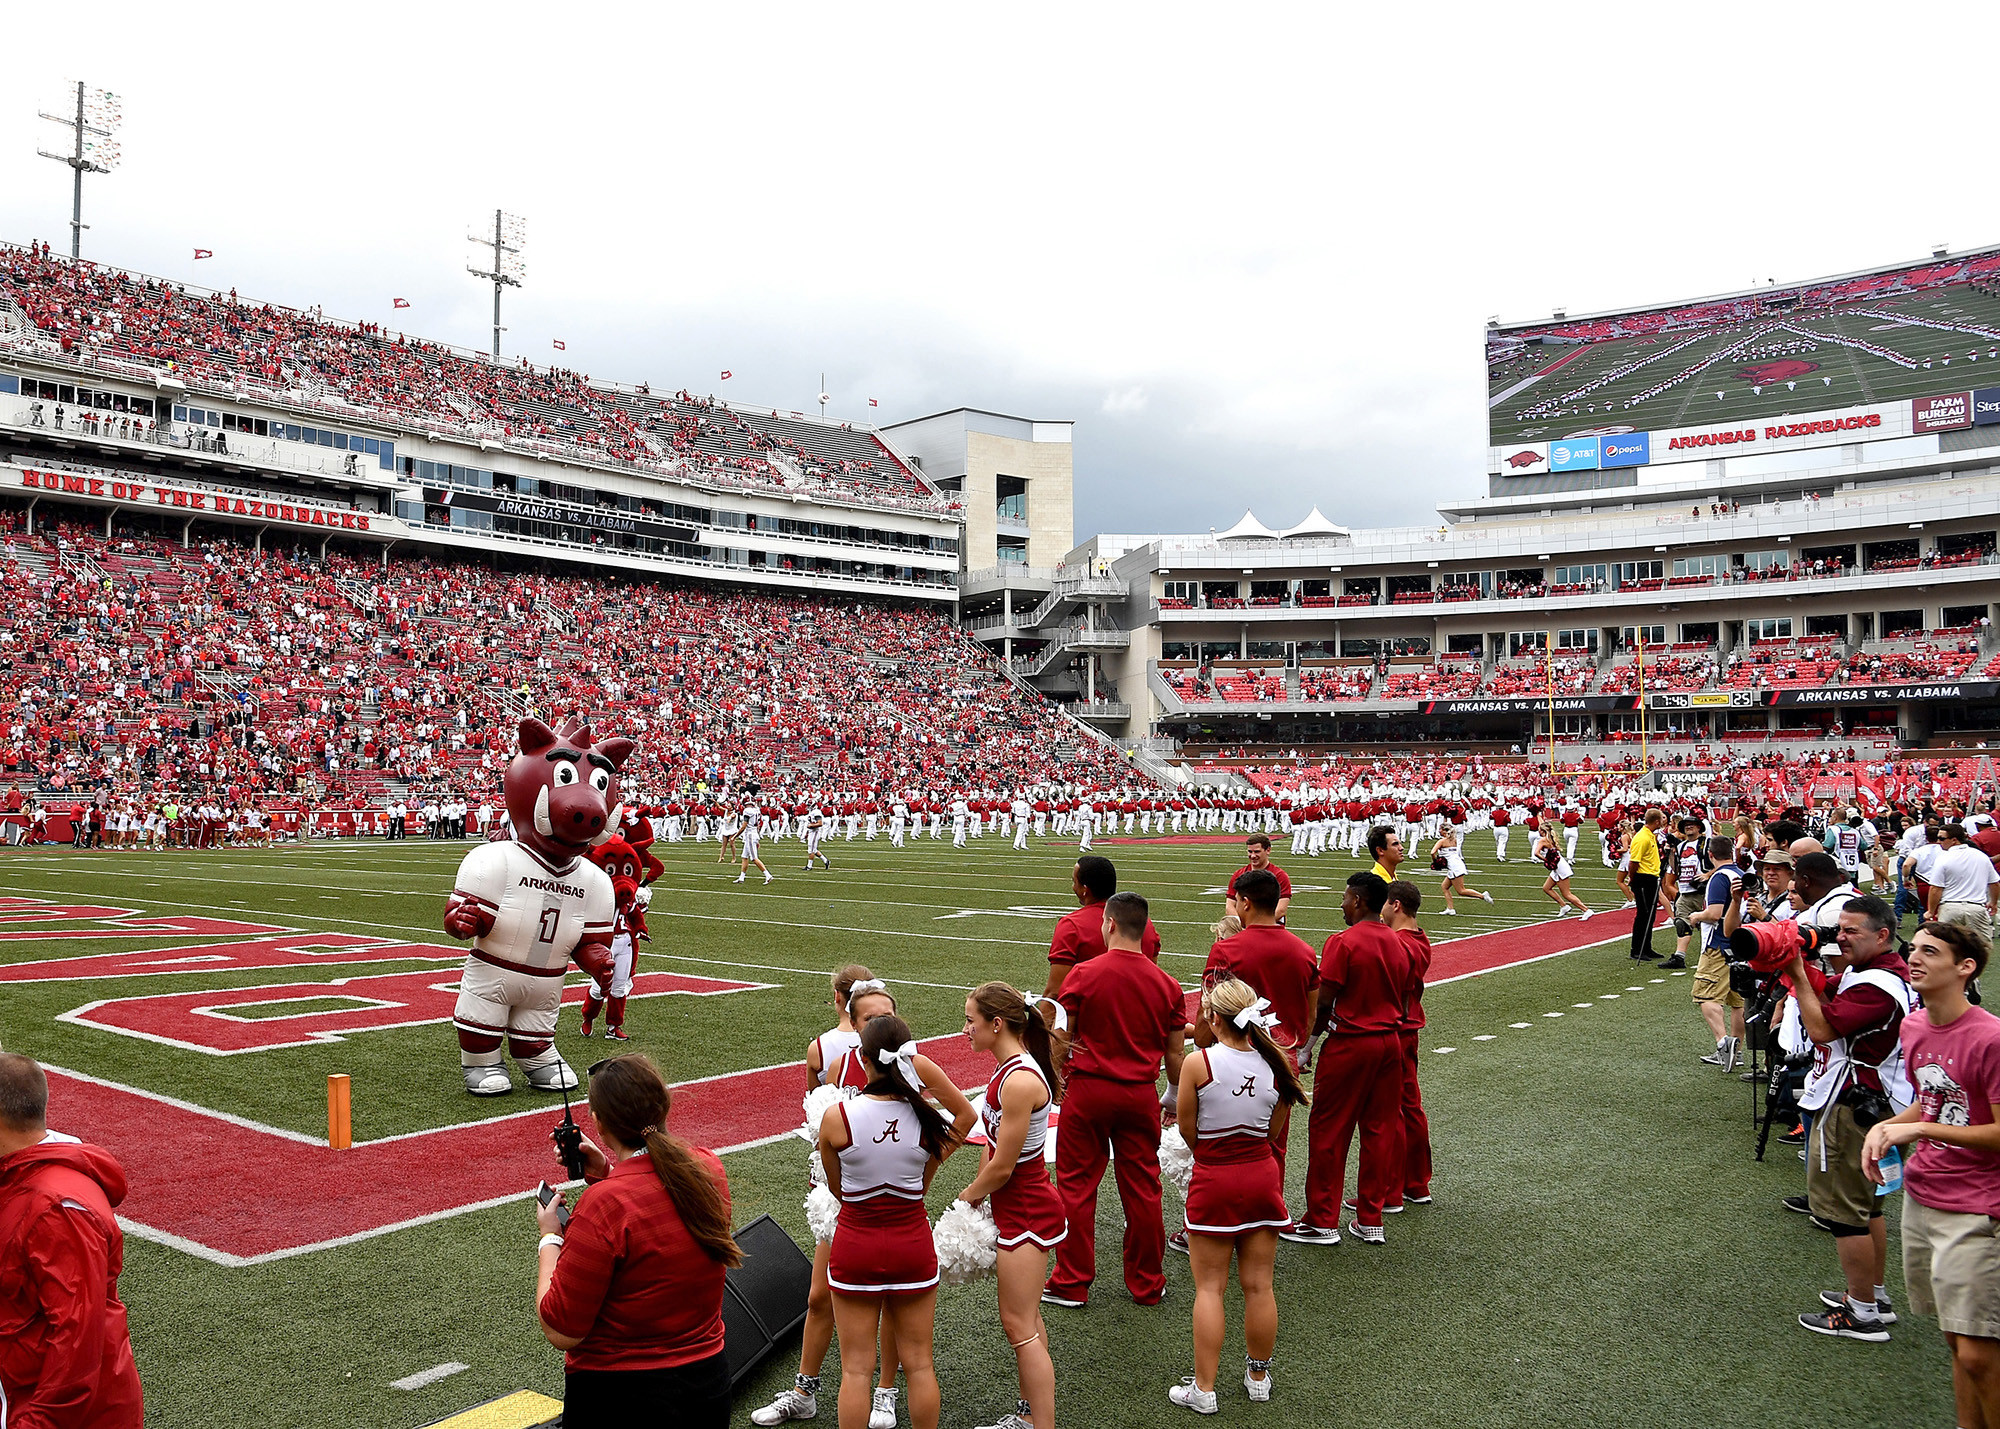 From the pregame of the NCAA football game between the Arkansas Razorbacks and the Alabama Crimson Tide at Razorback Stadium on Oct. 6, 2018, in Fayetteville, Ark. Alabama defeated Arkansas 65-31. (Photo by Lee Walls)